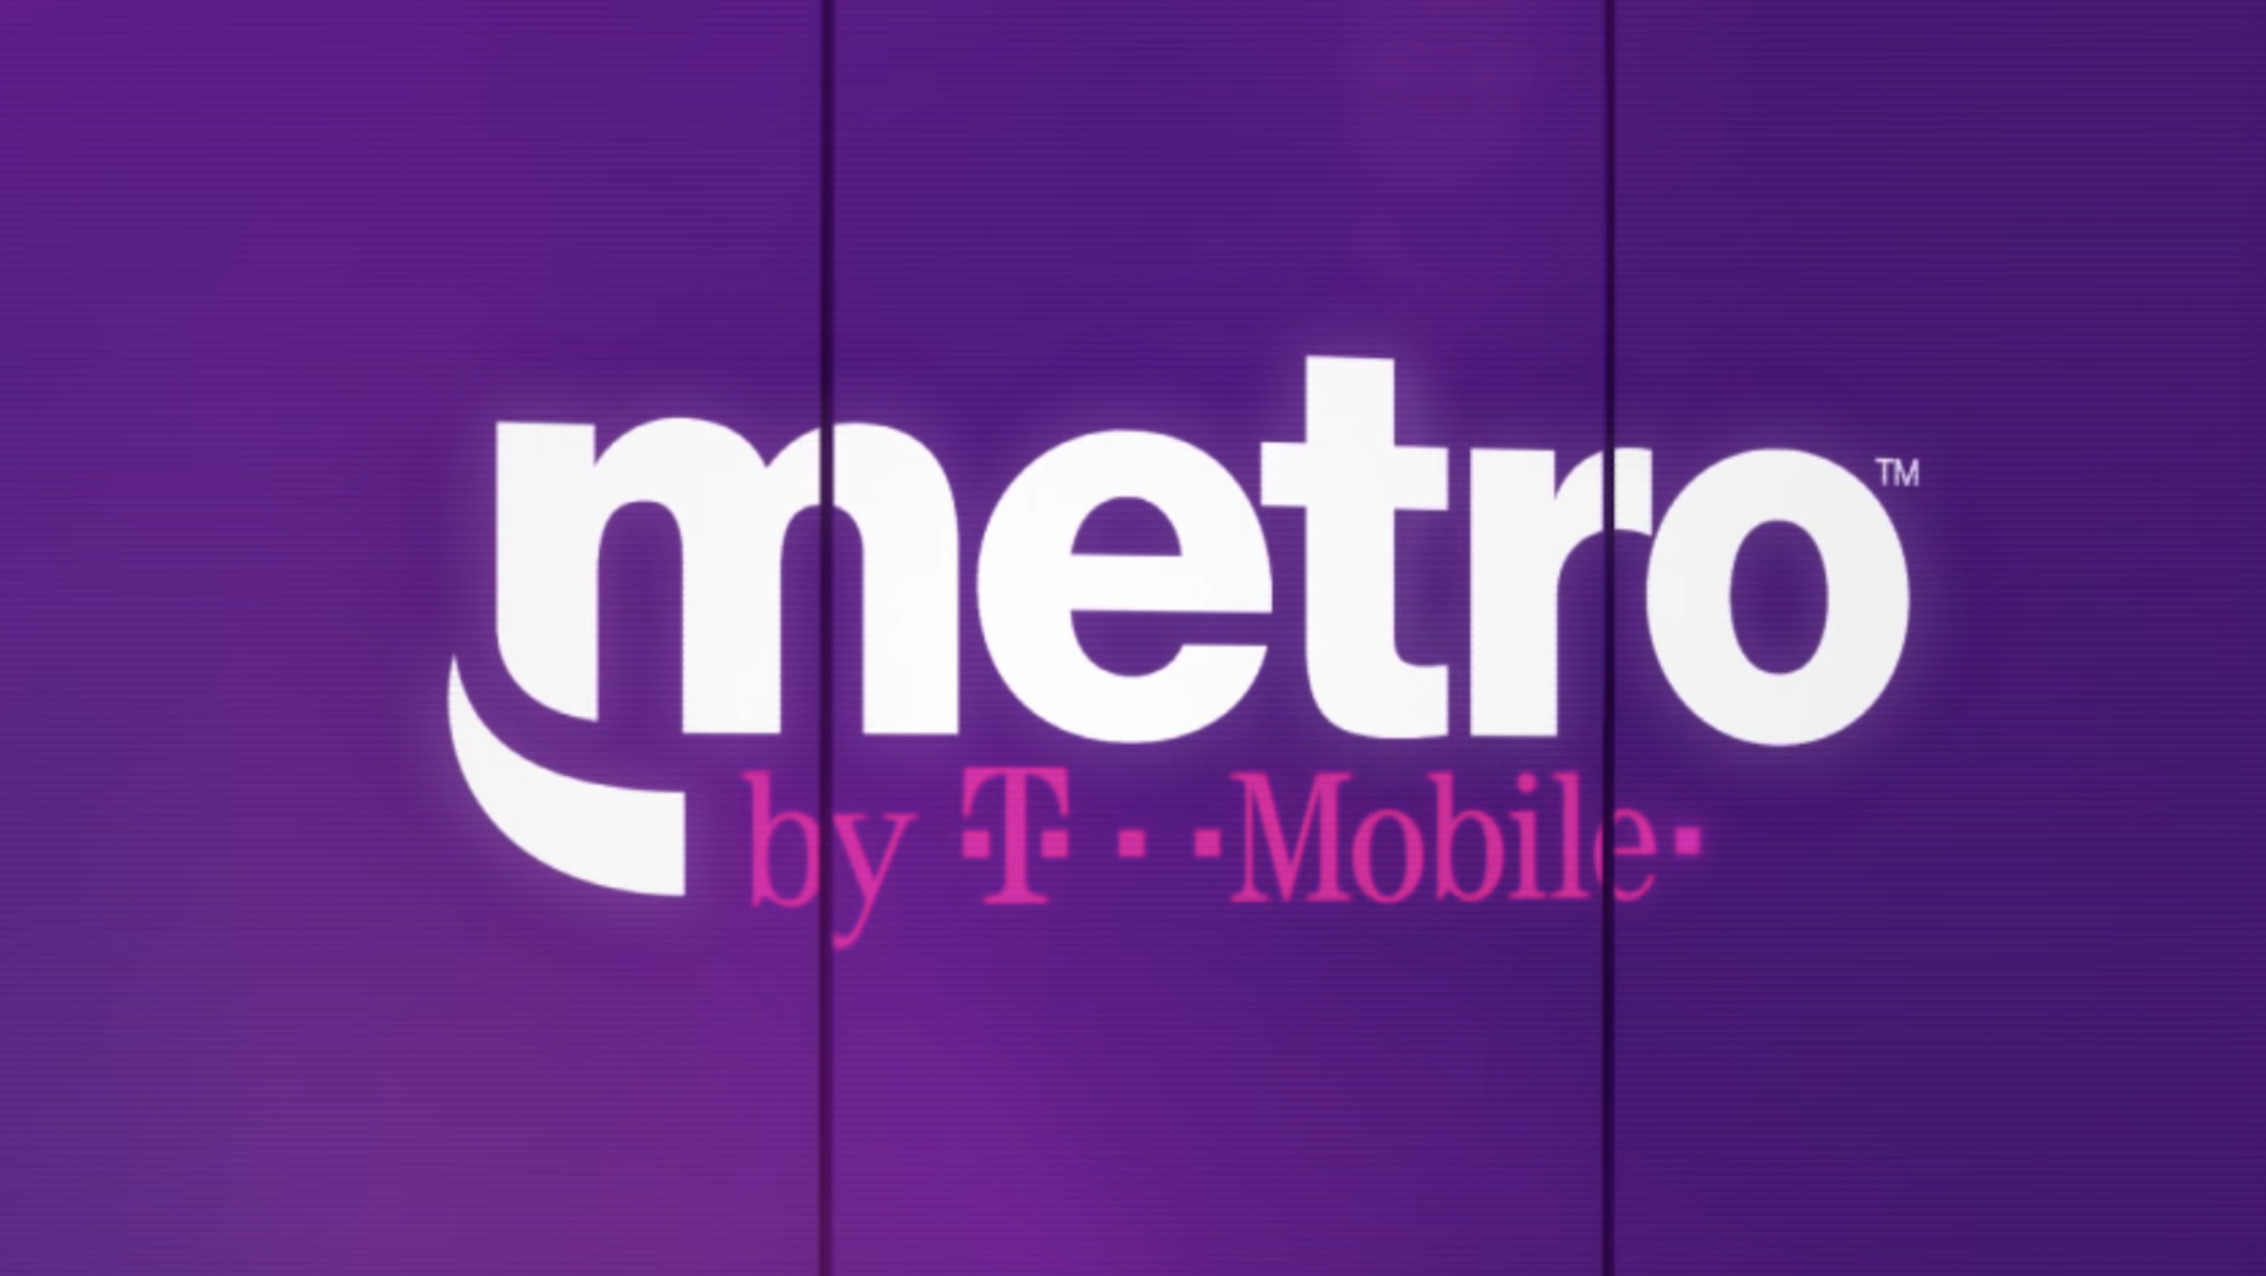 John Legere Unveils the New Metro by T